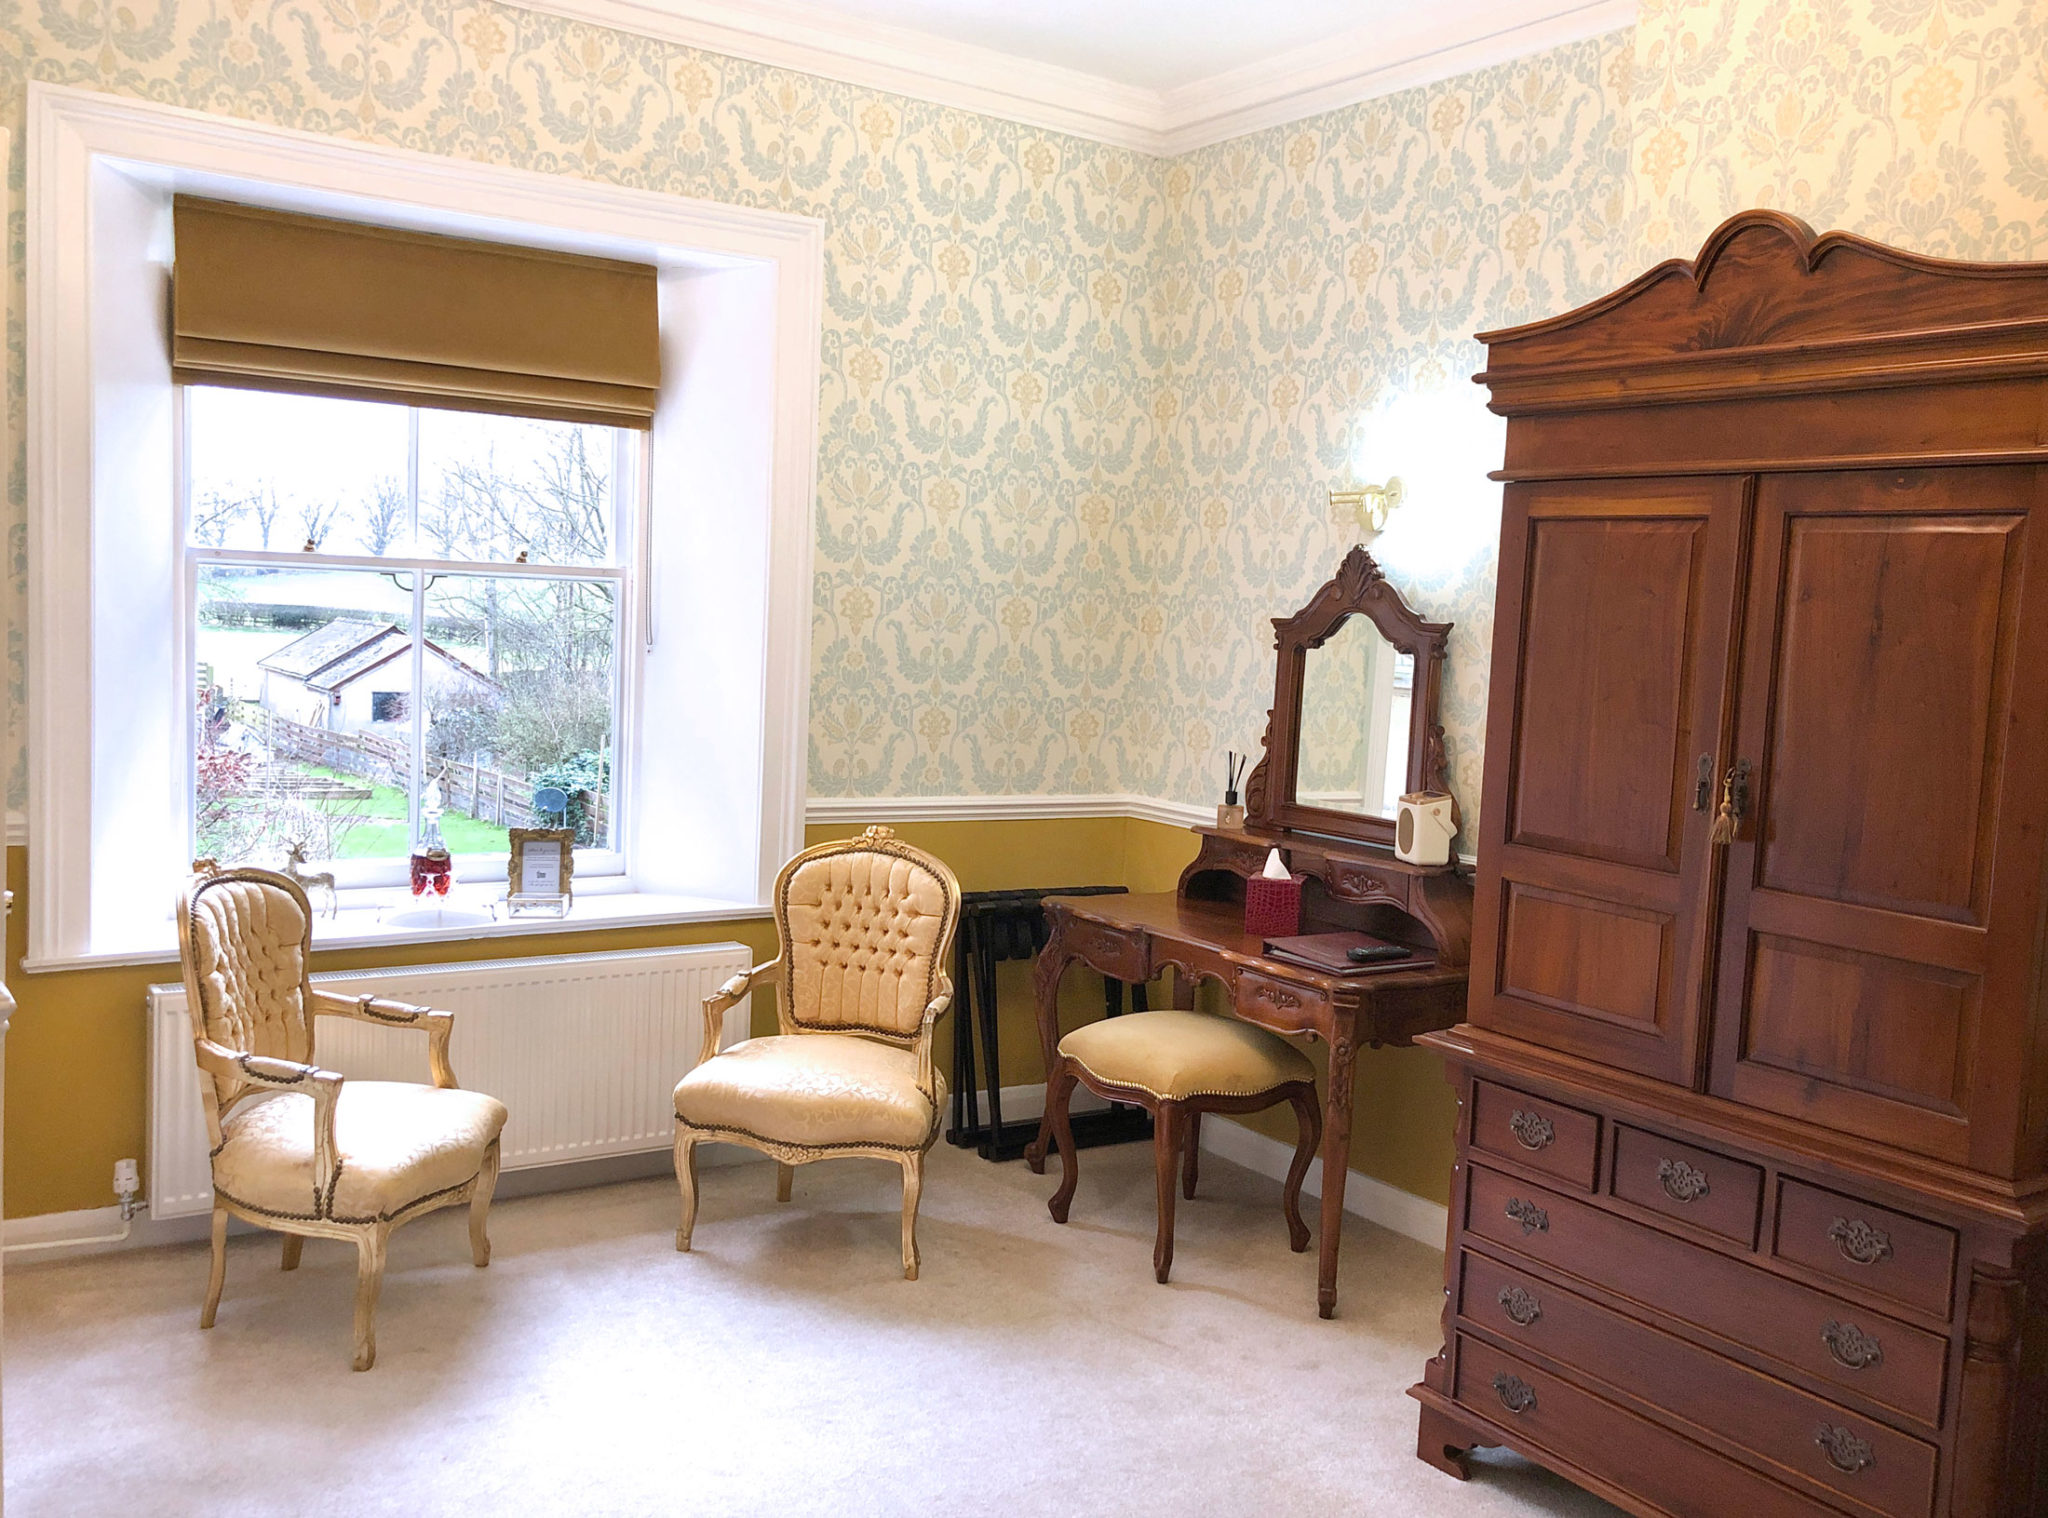 The Miss Embleton Room